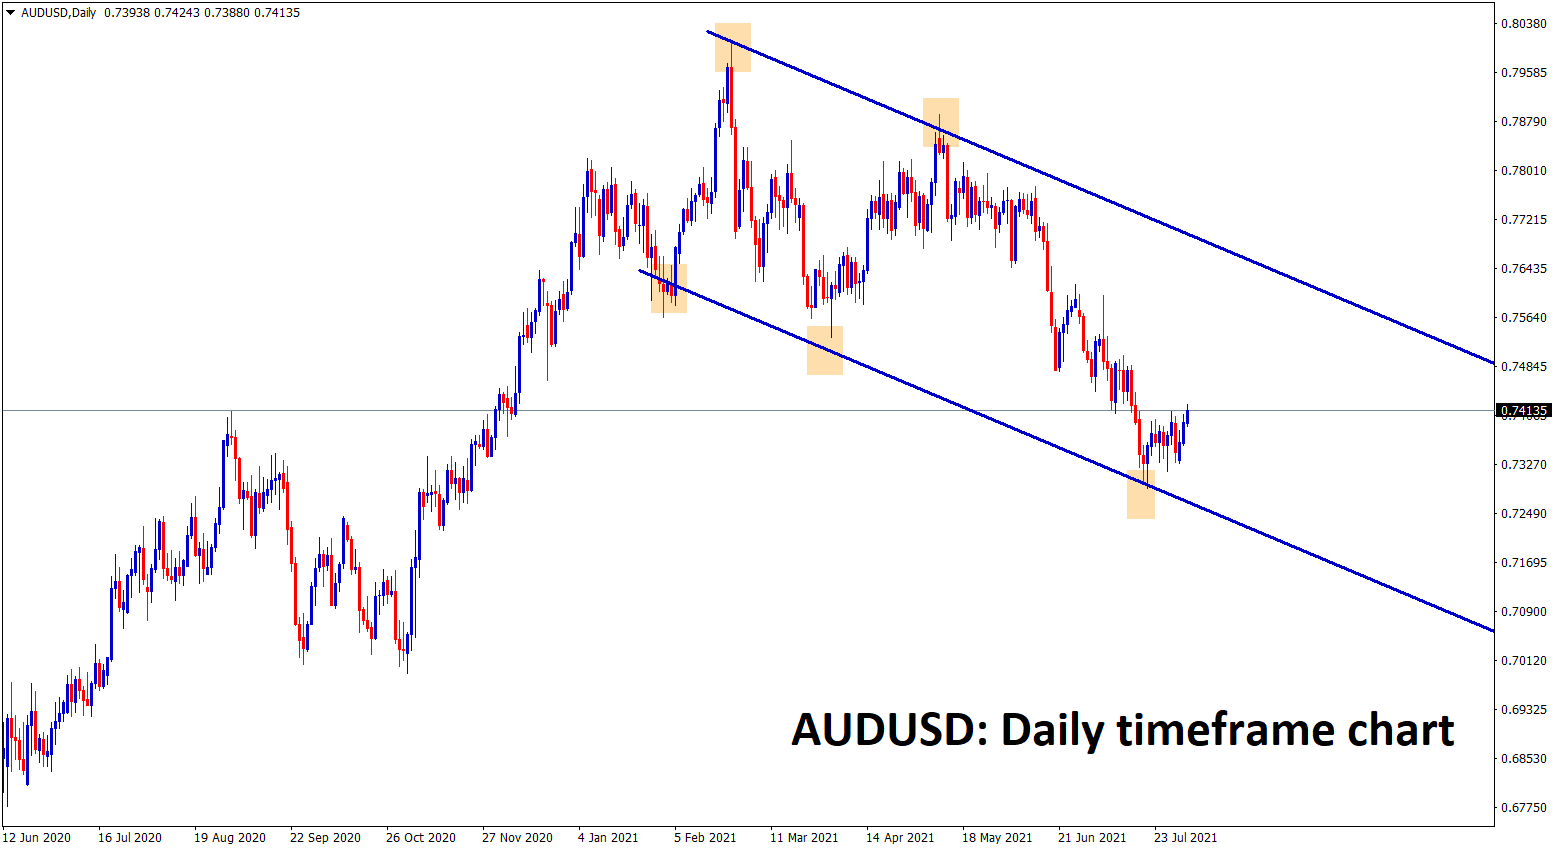 AUDUSD is bouncing back from the lower low level of the downtrend channel